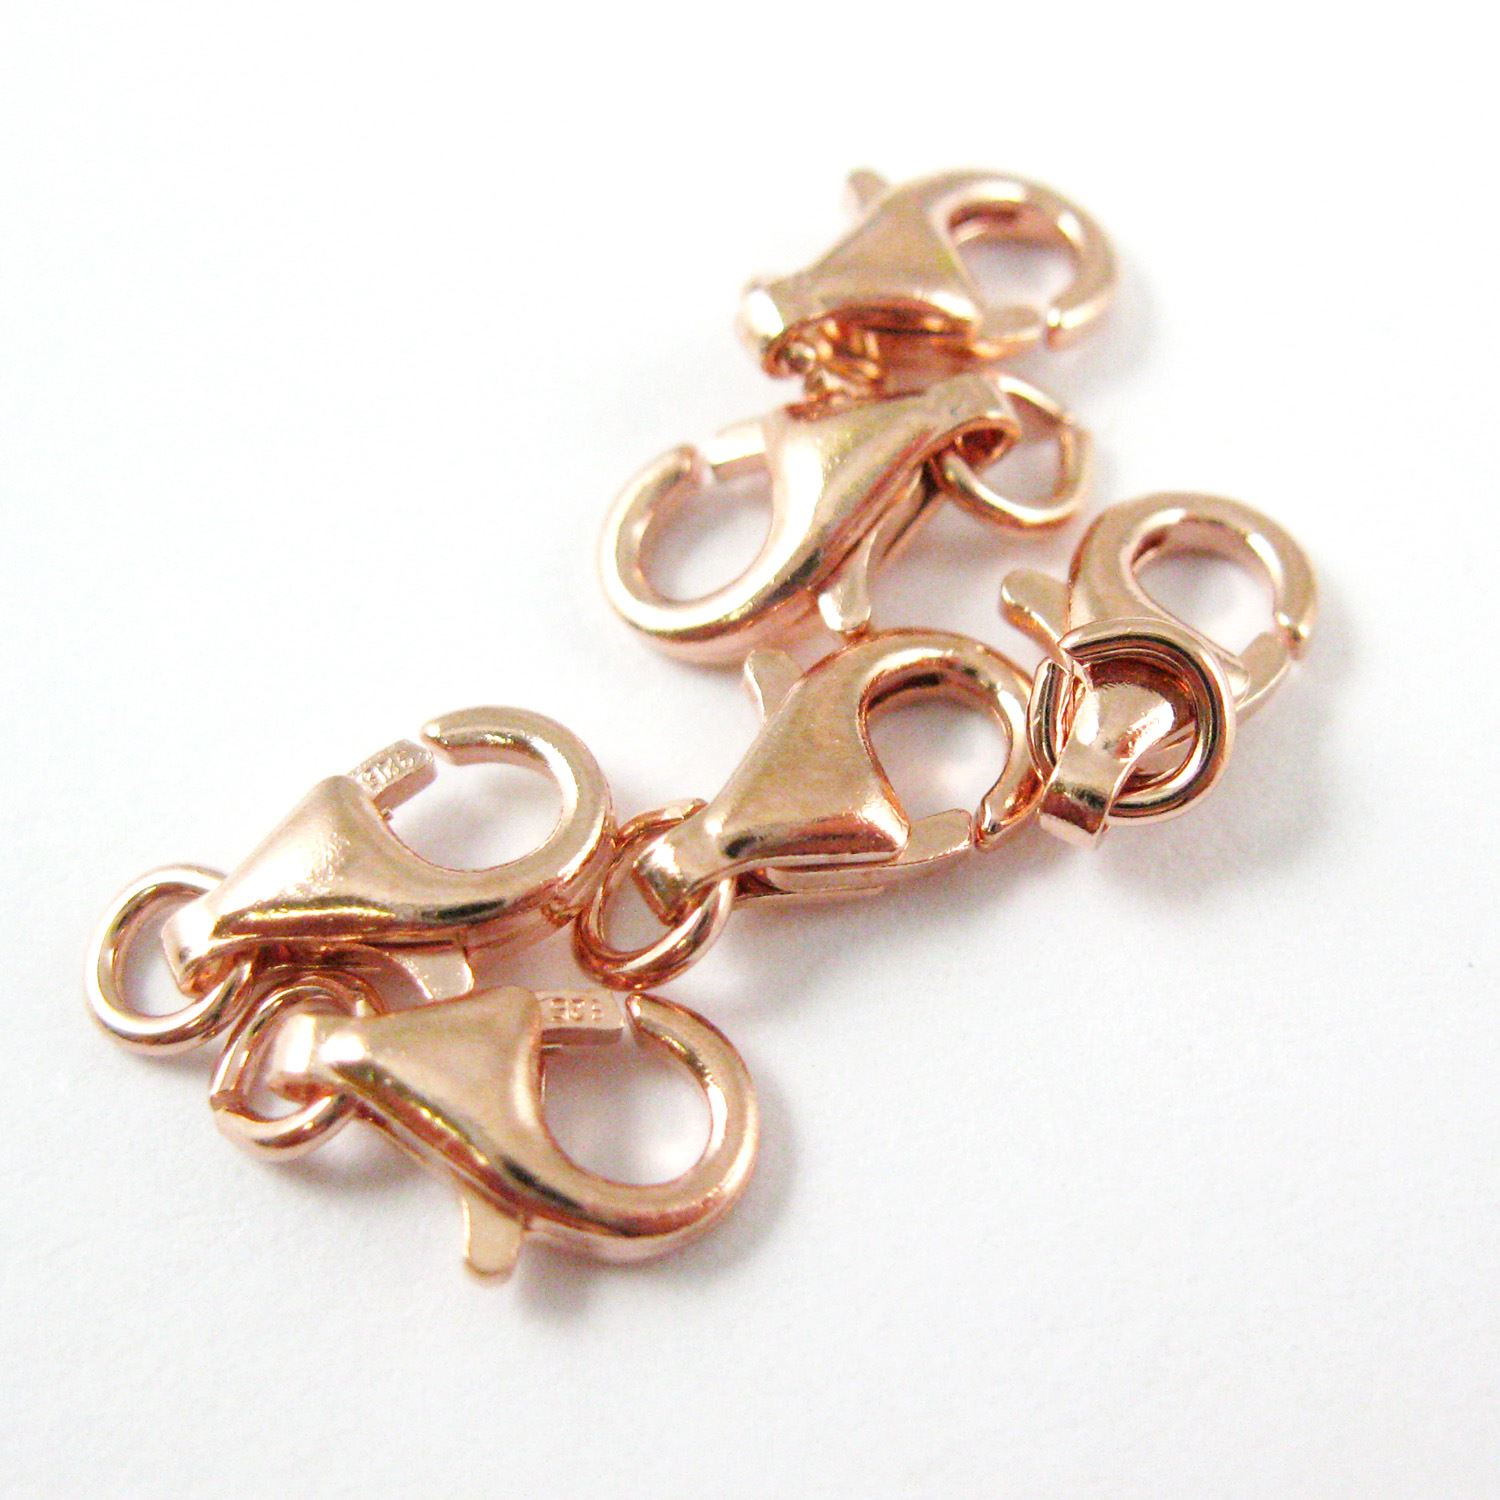 Rose Gold Plated Findings, Gold Clasp, 925 Sterling Silver Clasp - Lobster Style 9mm (sold per 5 pieces)